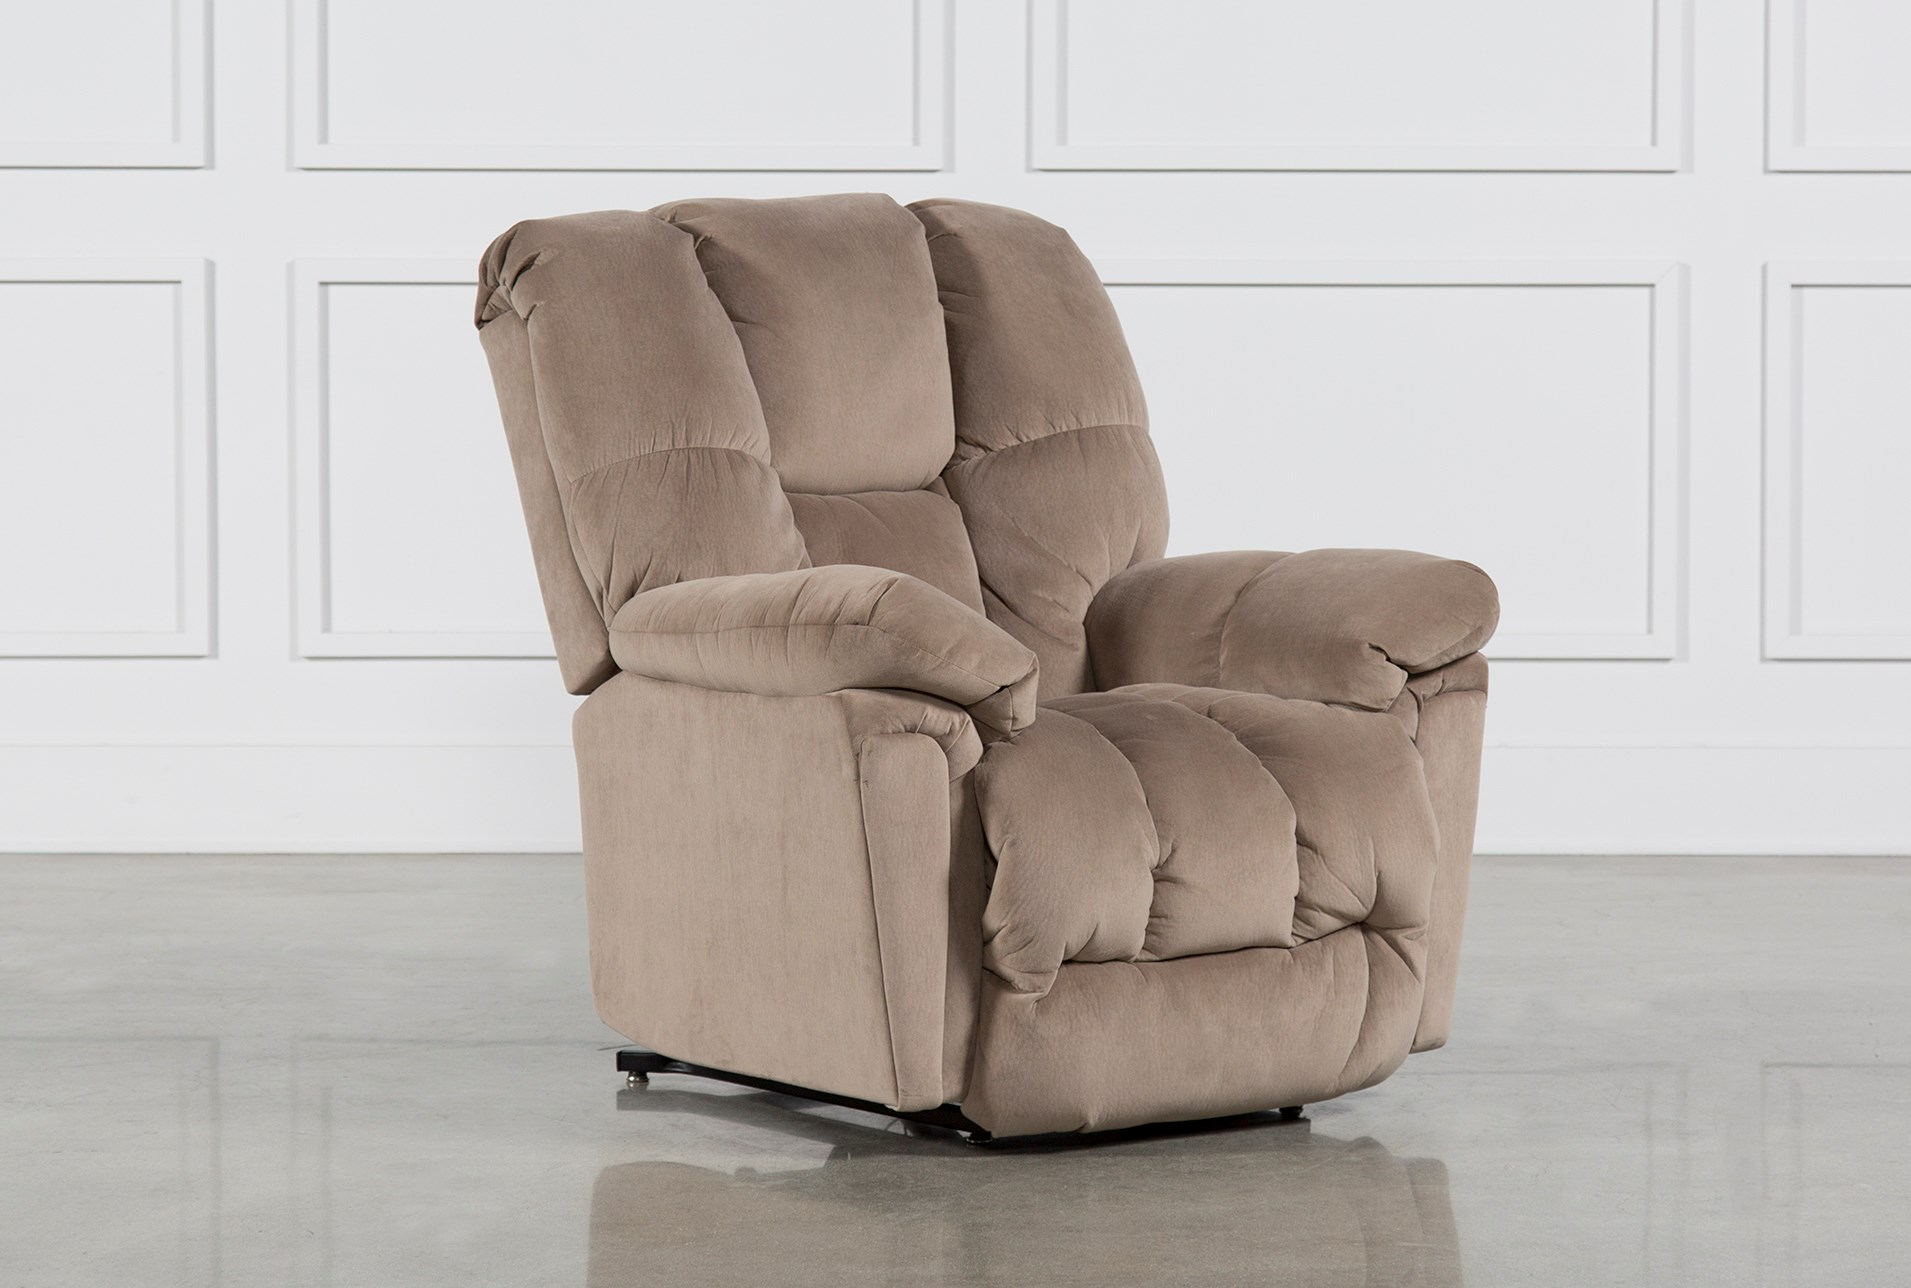 amazon back high uk rio computer point dp office kitchen home co recliner leather chair desk cream massage swivel w reclining